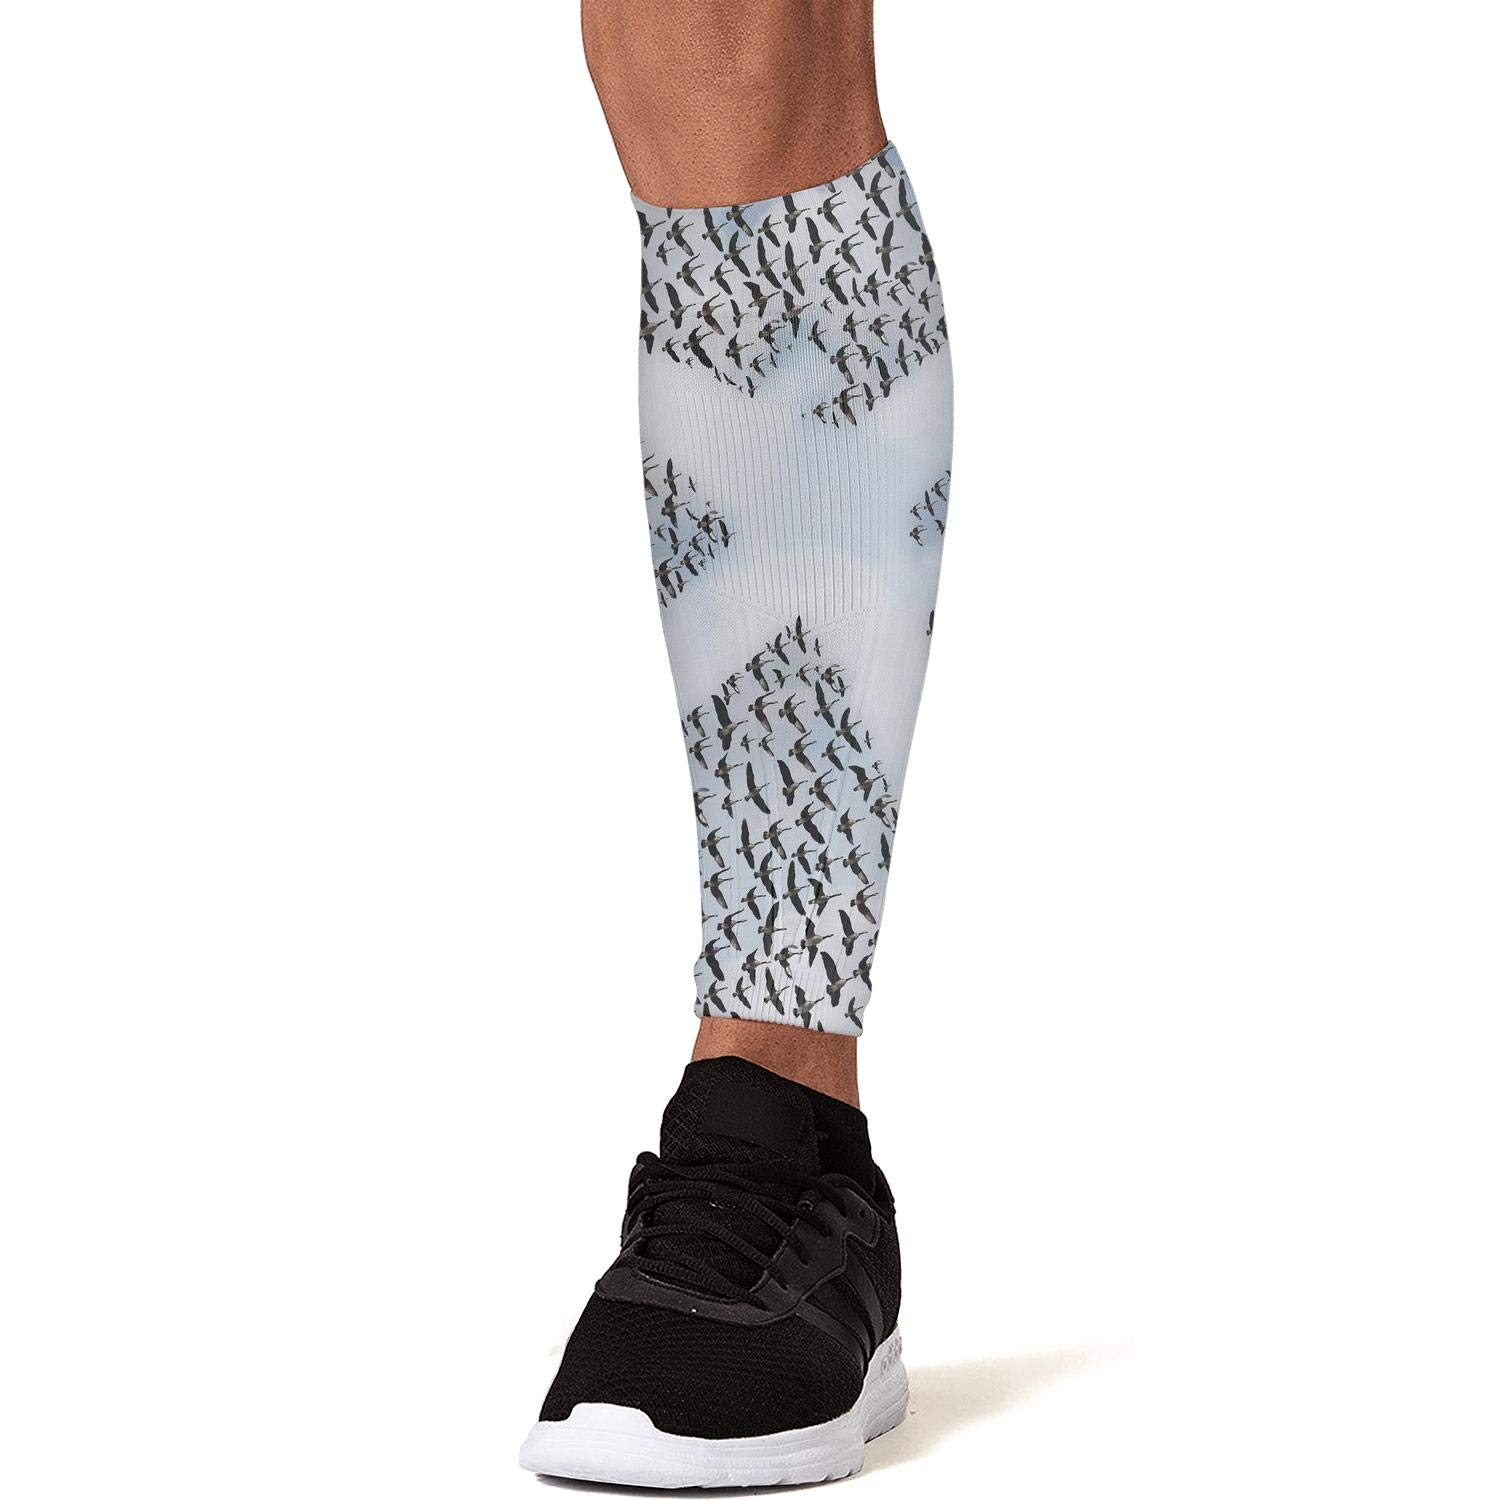 Smilelolly Airplane in The Sky with Doves Bird Calf Compression Sleeves Helps Pain Relief Leg Sleeves for Men Women